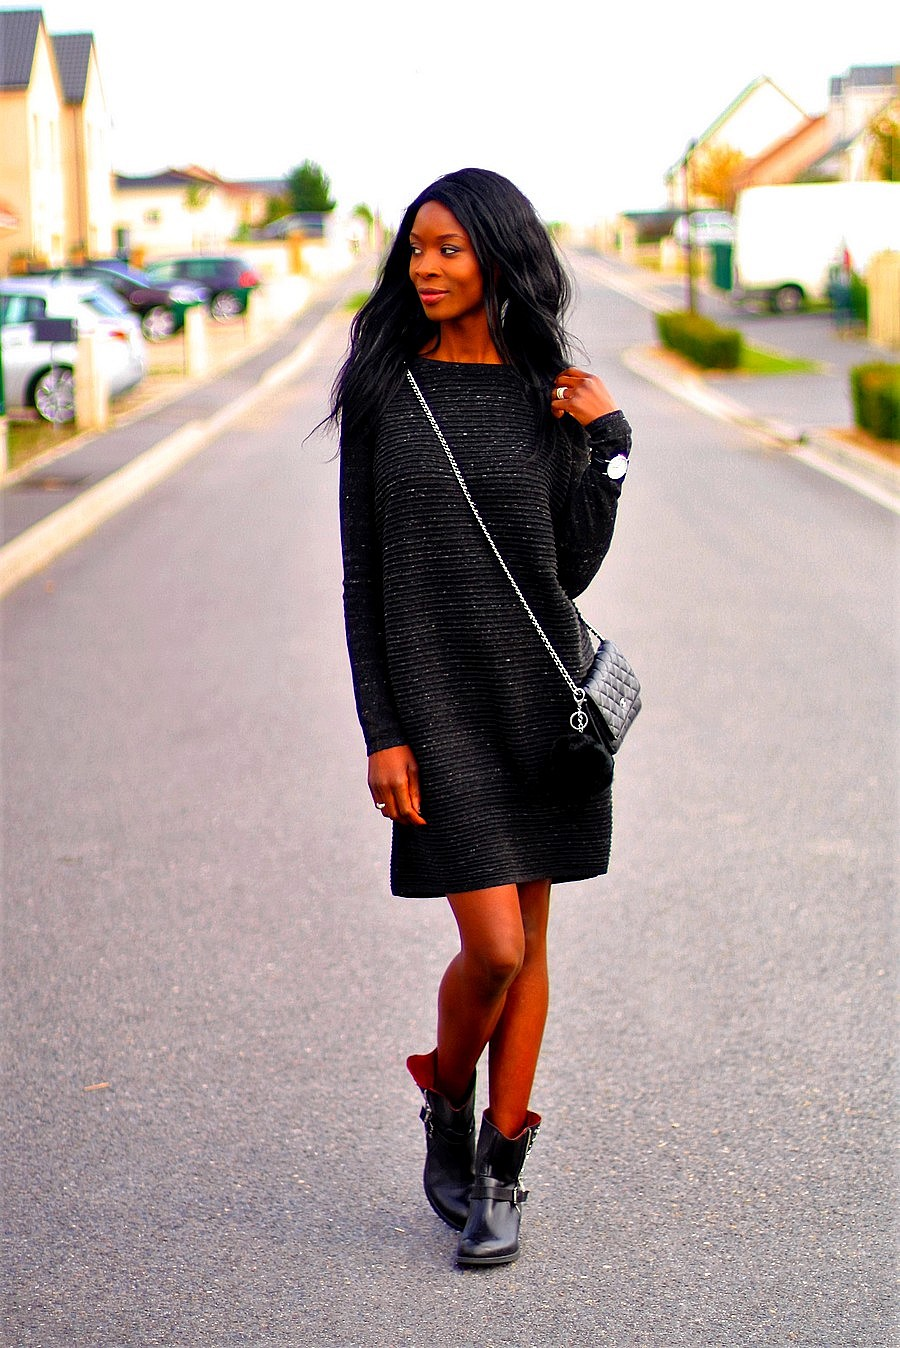 automne-style-robe-pull-asos-bottes-motardes-sac-chanel-woc